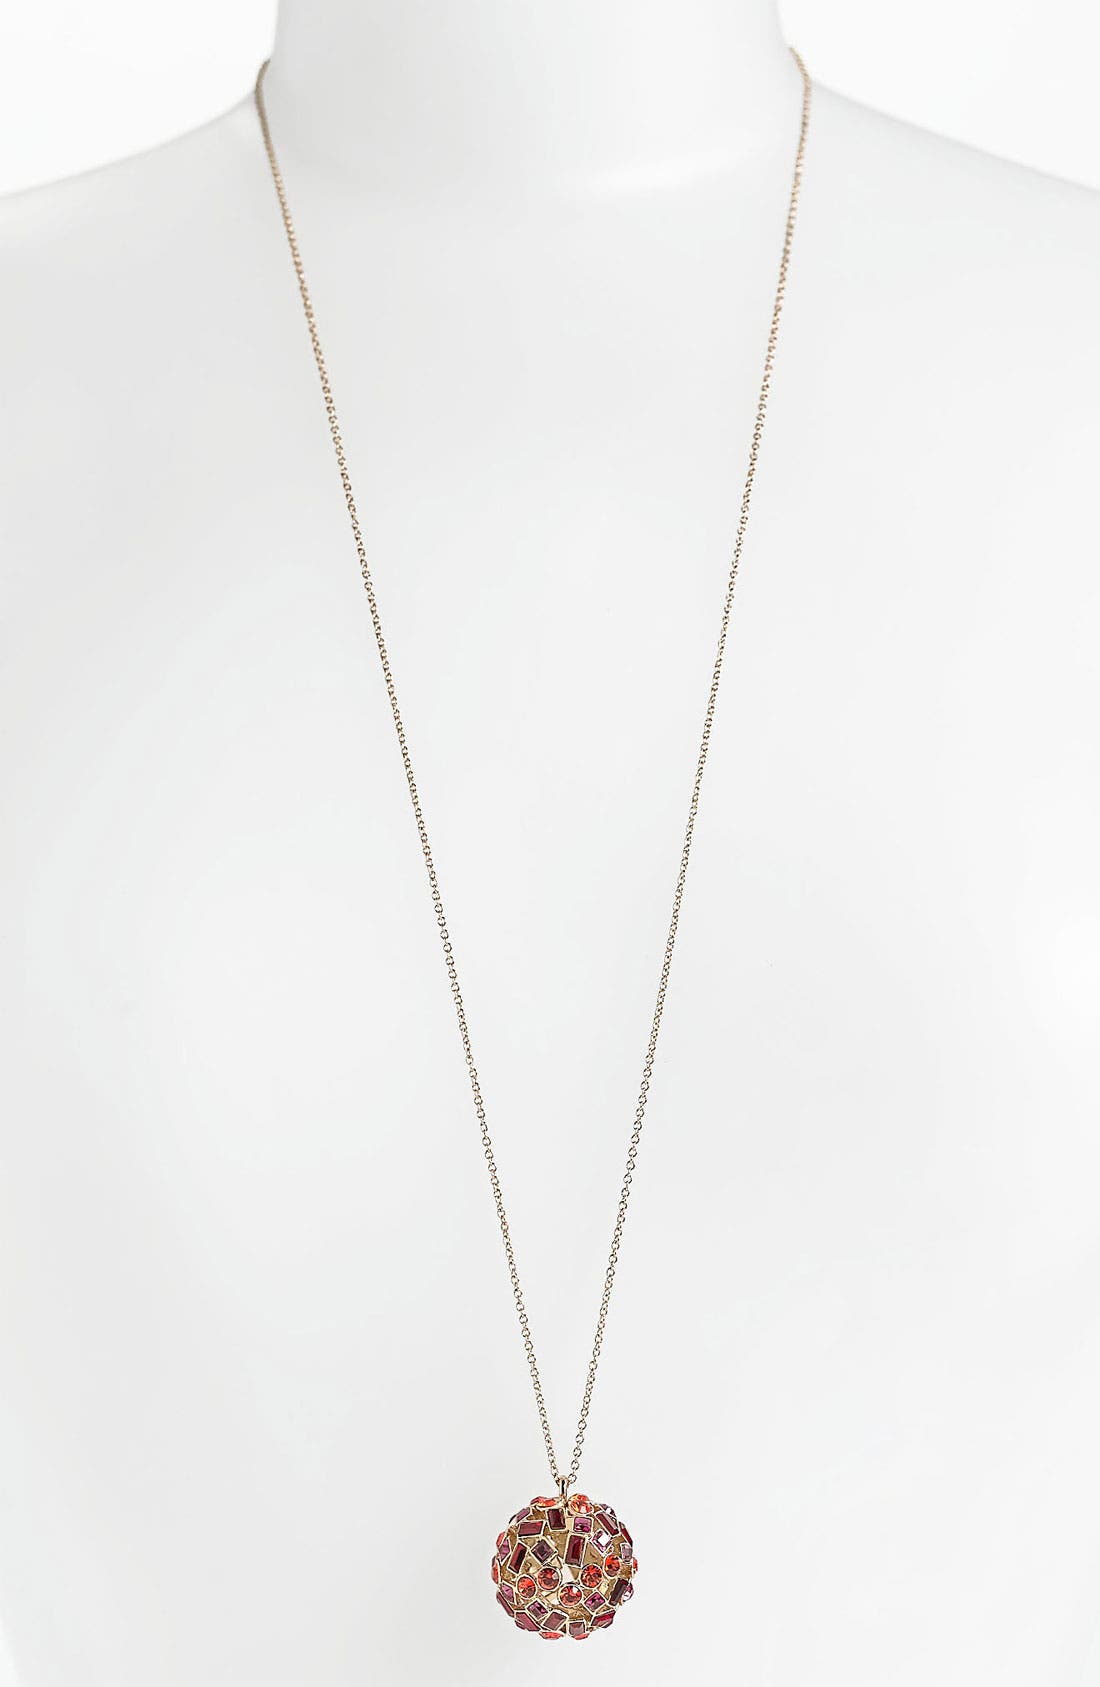 Main Image - kate spade new york 'kaleidoball' pendant necklace